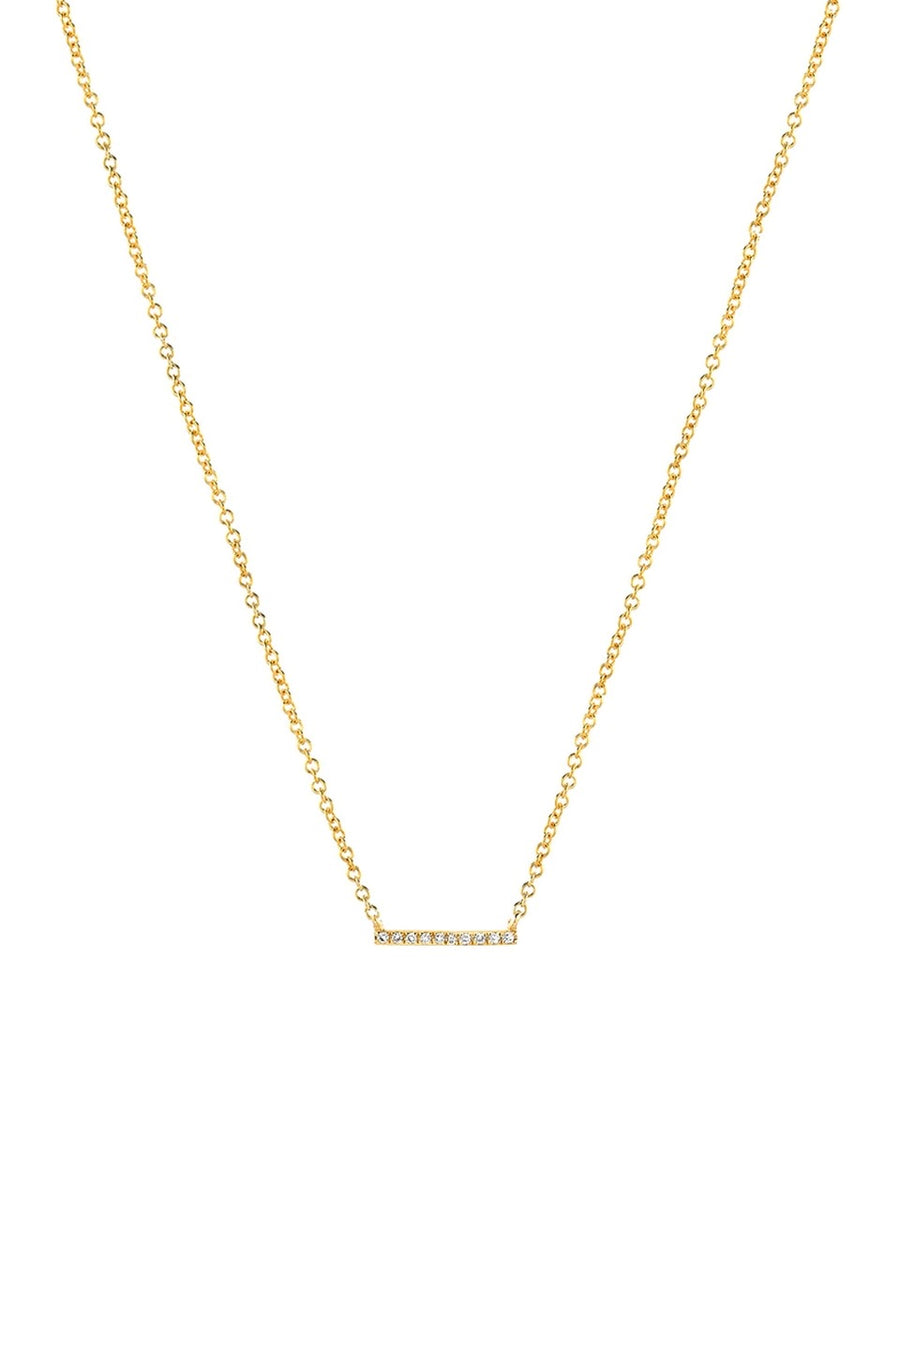 *Zoe Lev Diamond Bar Nexklace